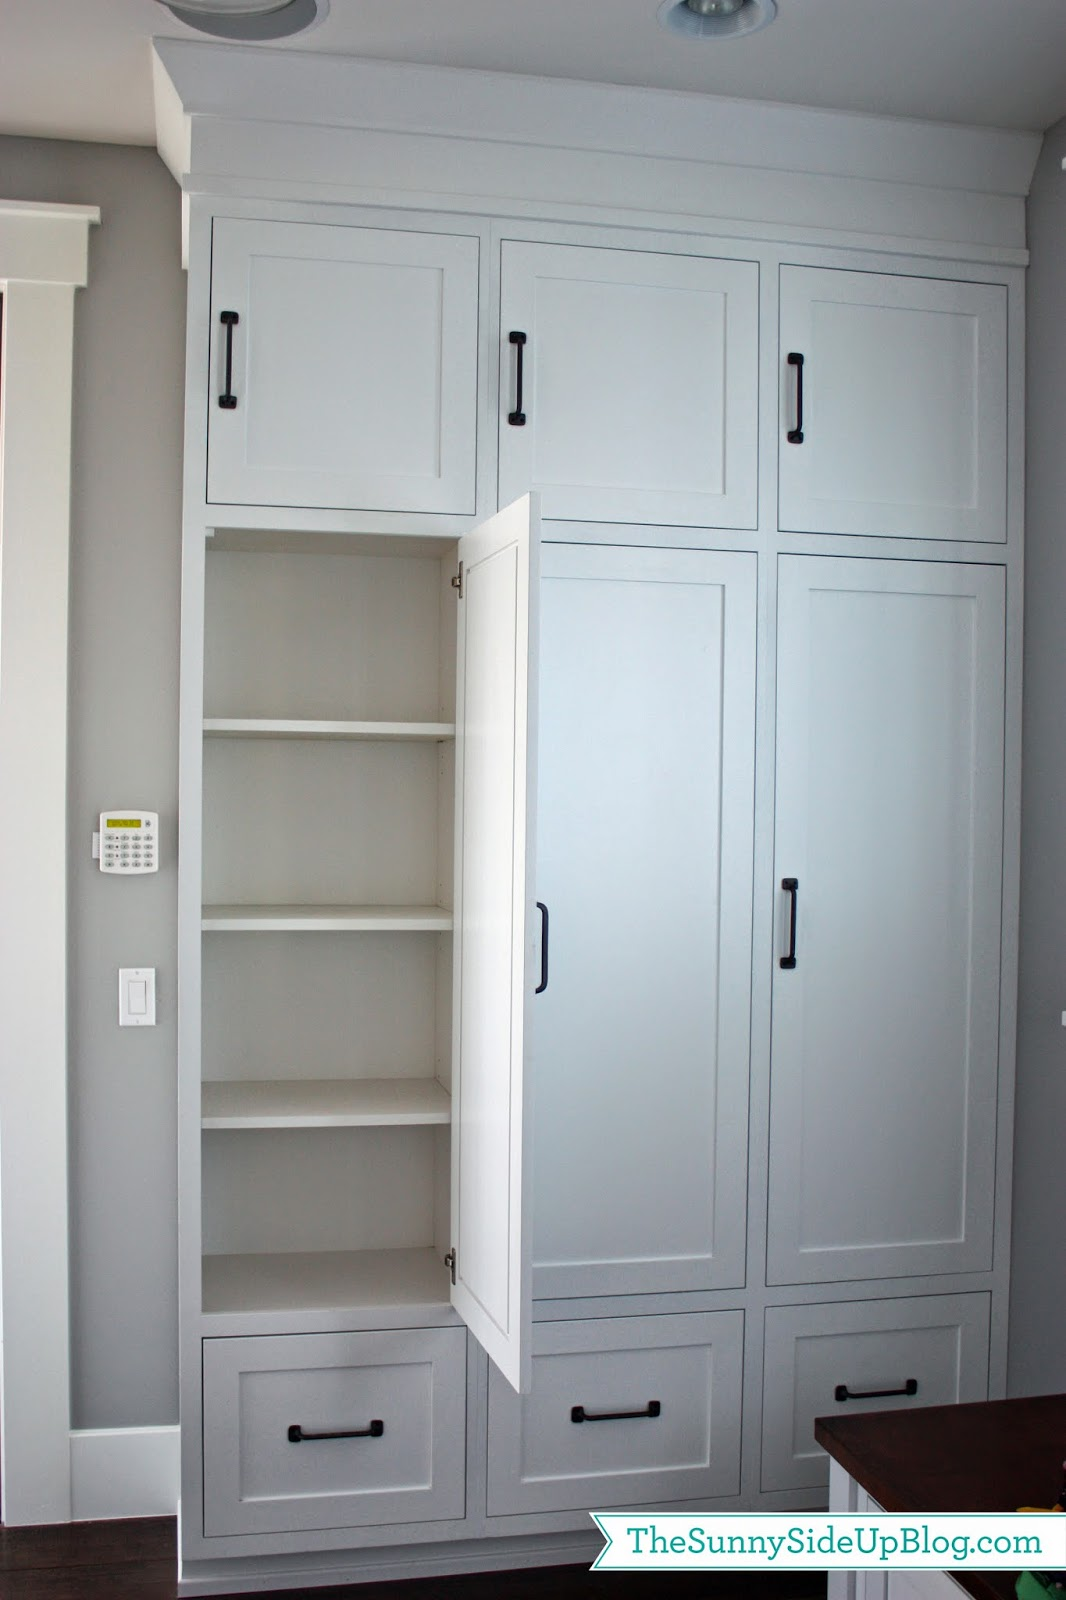 My new organized mudroom the sunny side up blog for Lounge cabinets